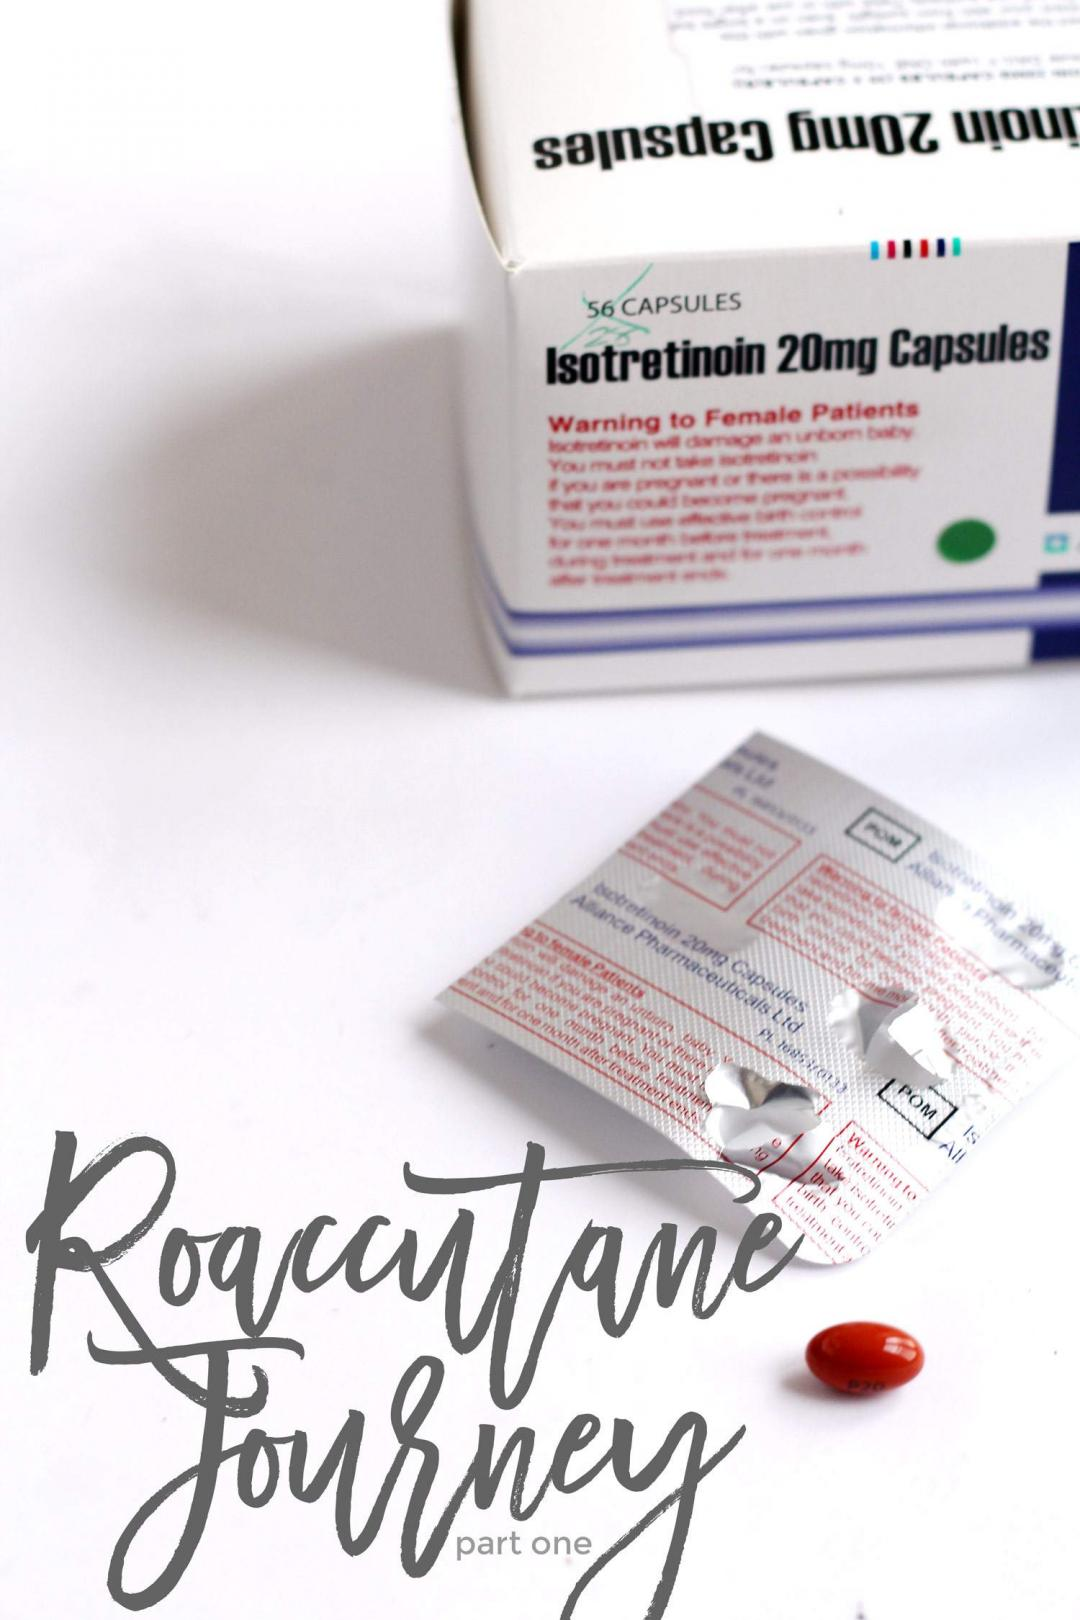 roaccutane-isotretanoin-journey-tablets-acne-medication-clear-skin